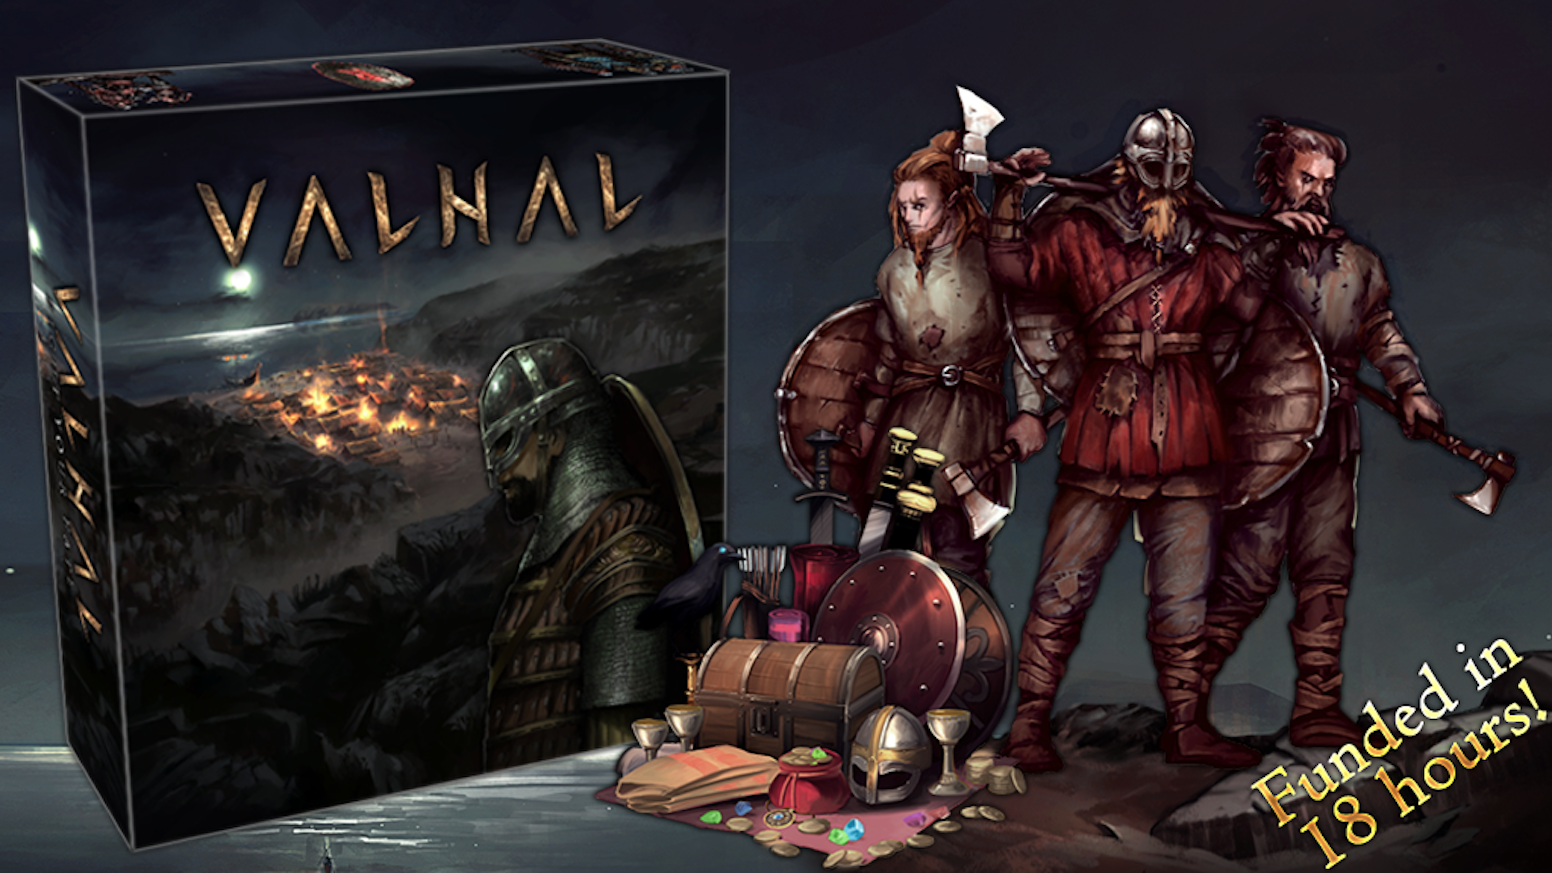 The unique, immersive, lore packed viking experience for history, story and roleplay loving gamers alike.Missed the campaign? Valhal will be available for PreOrder soon. Check out our Facebook page for any updates.